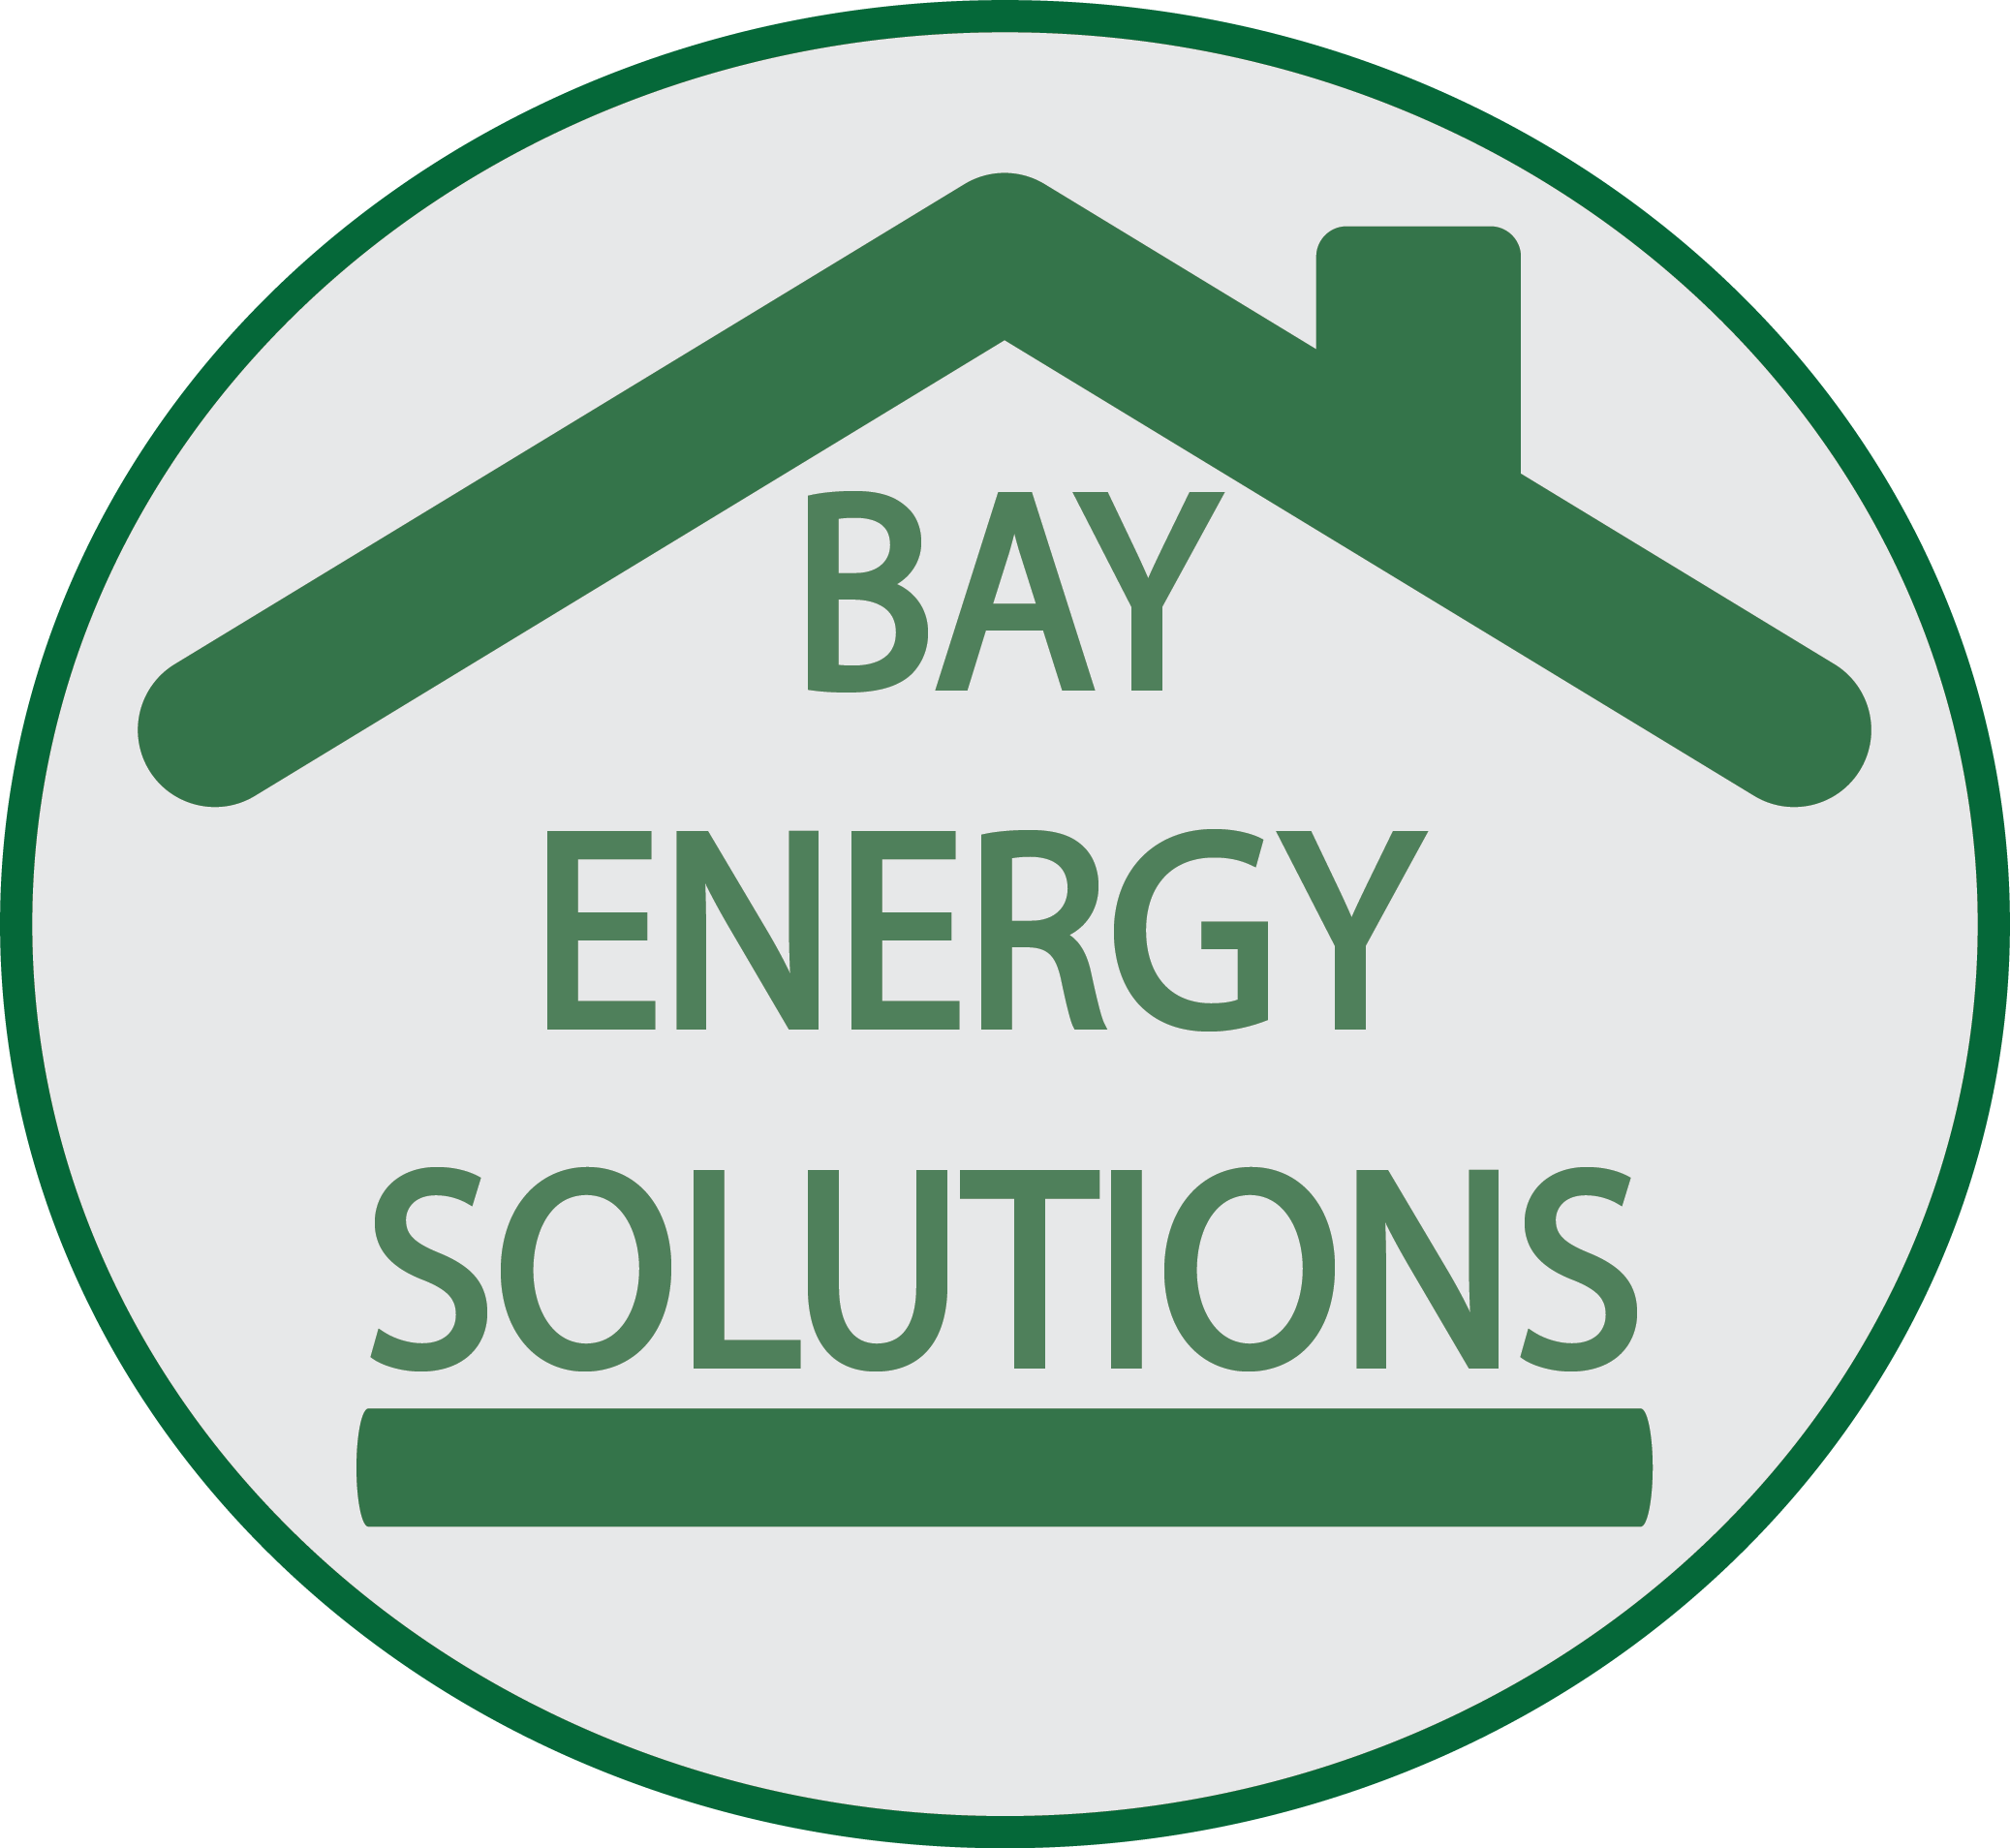 Bay Energy Solutions